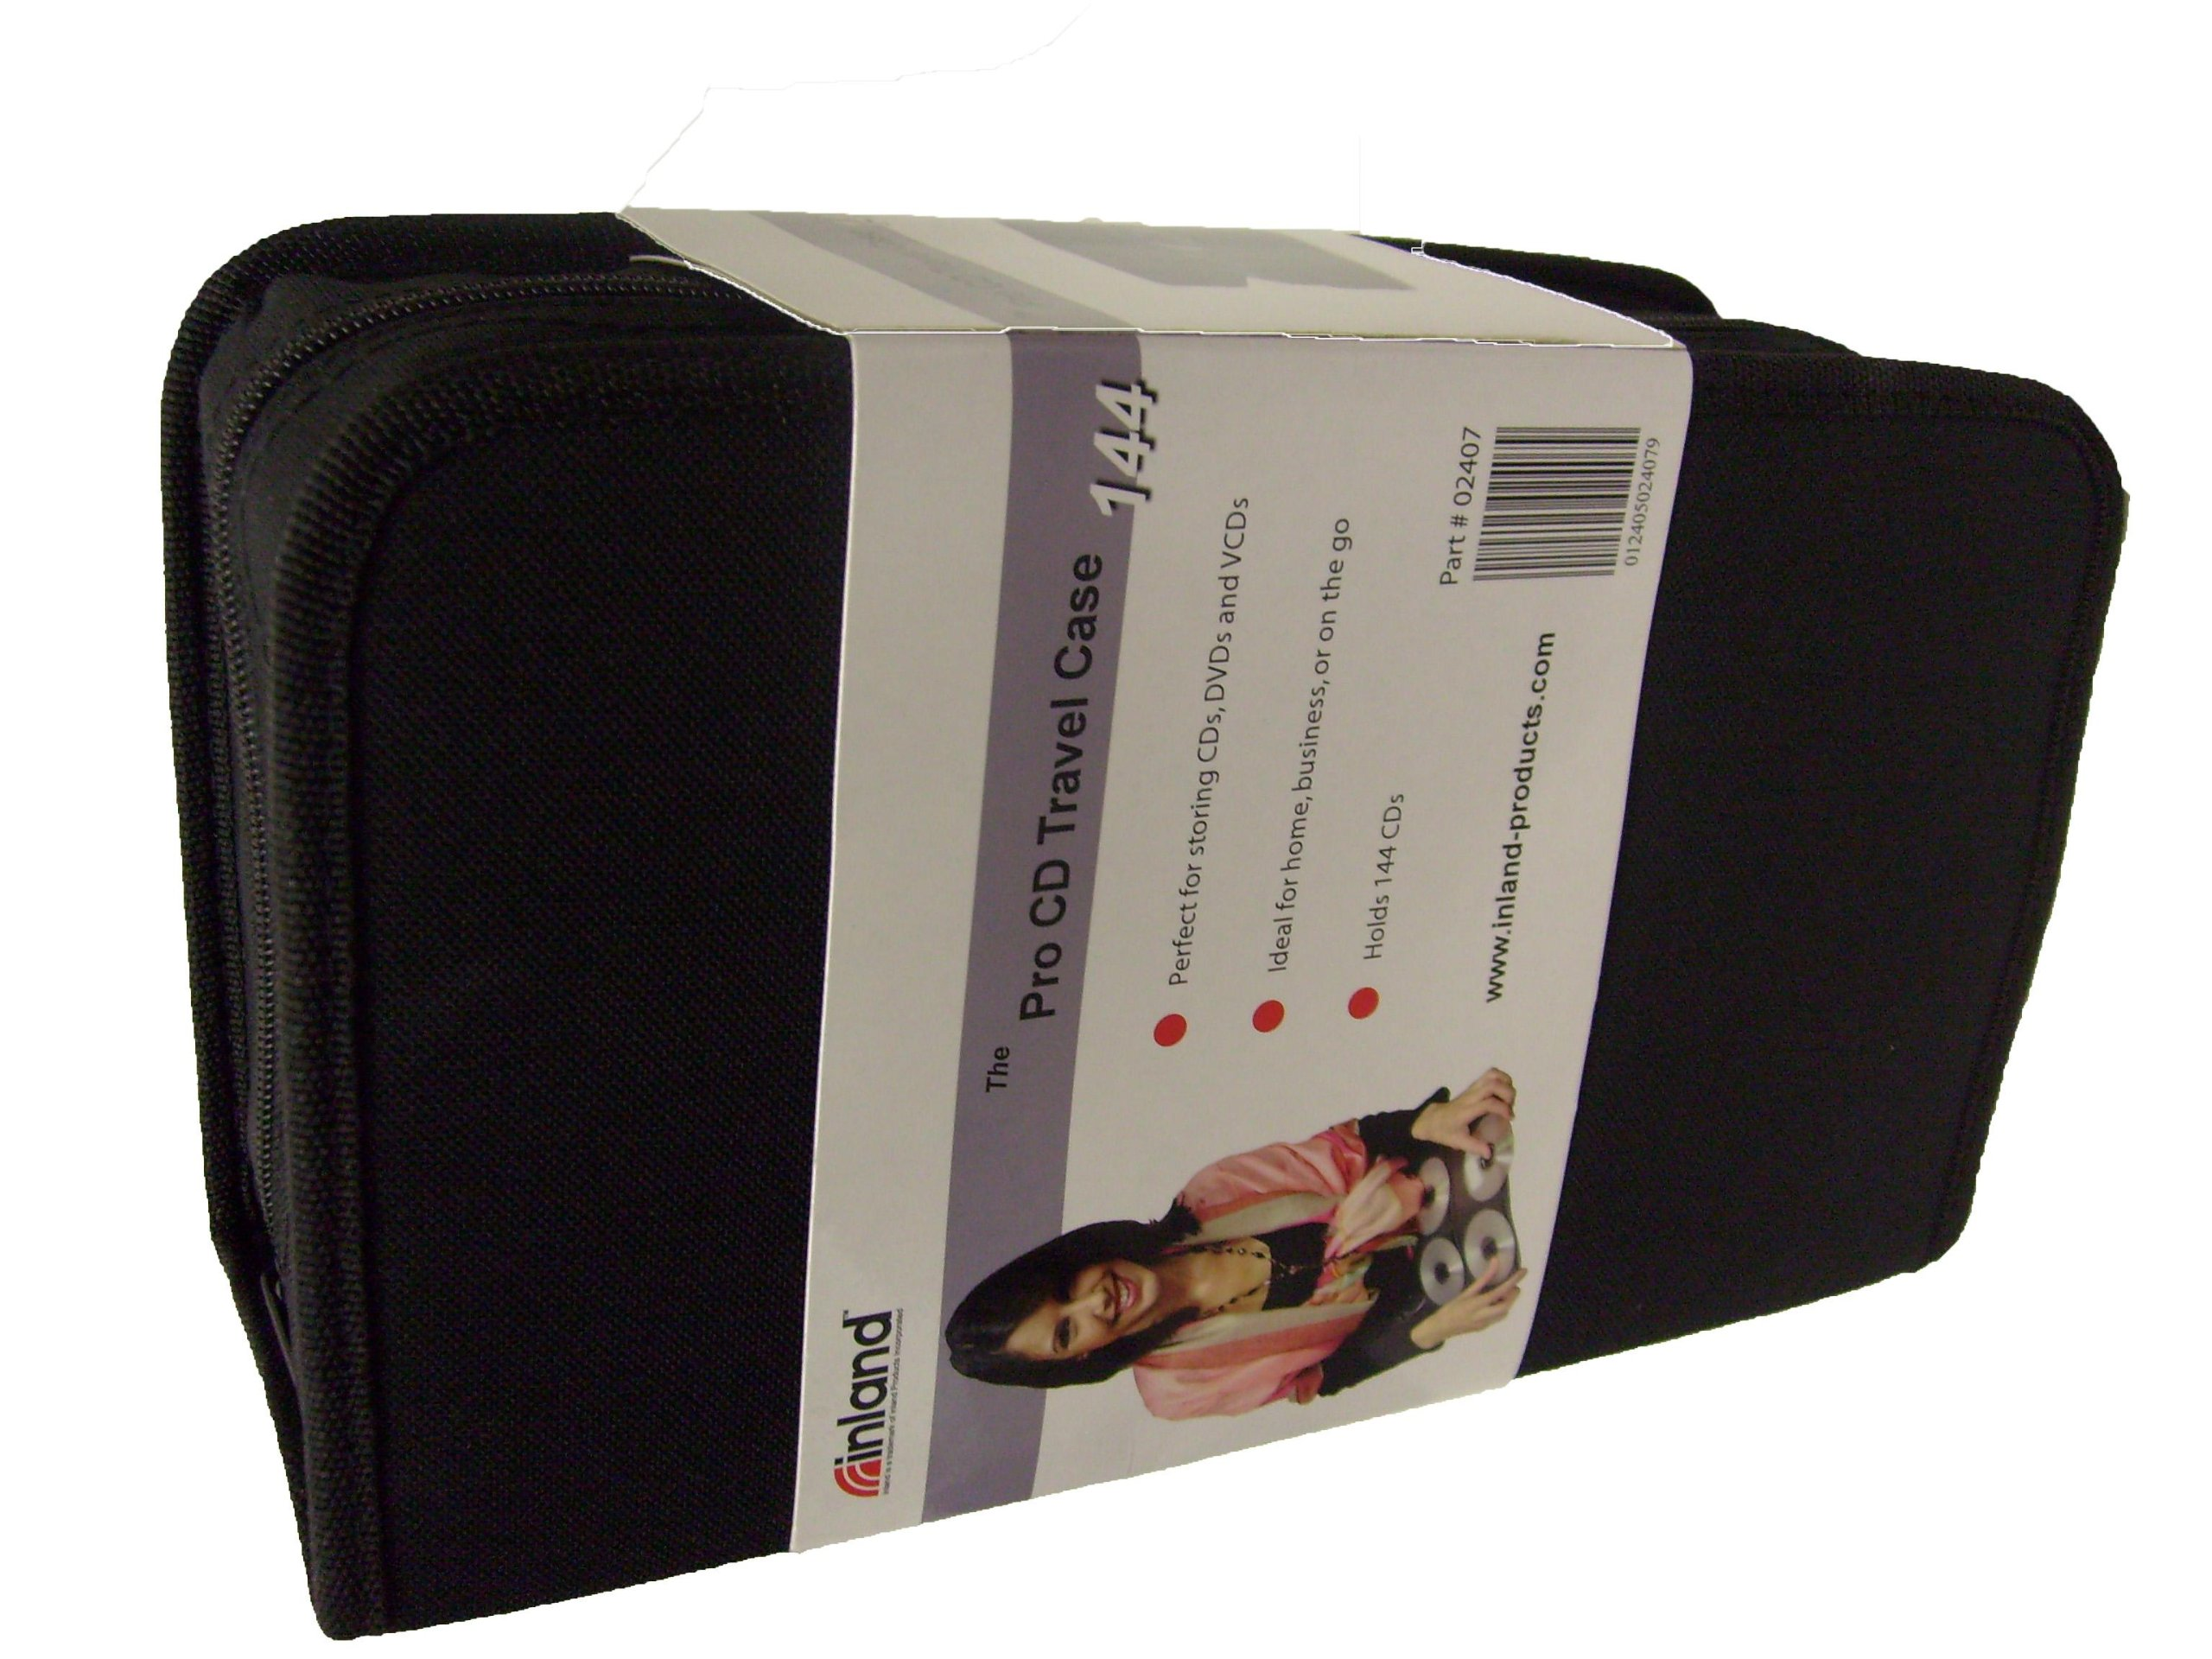 Inland Pro CD Travel Case (144 Disc Space) (Discontinued by Manufacturer)